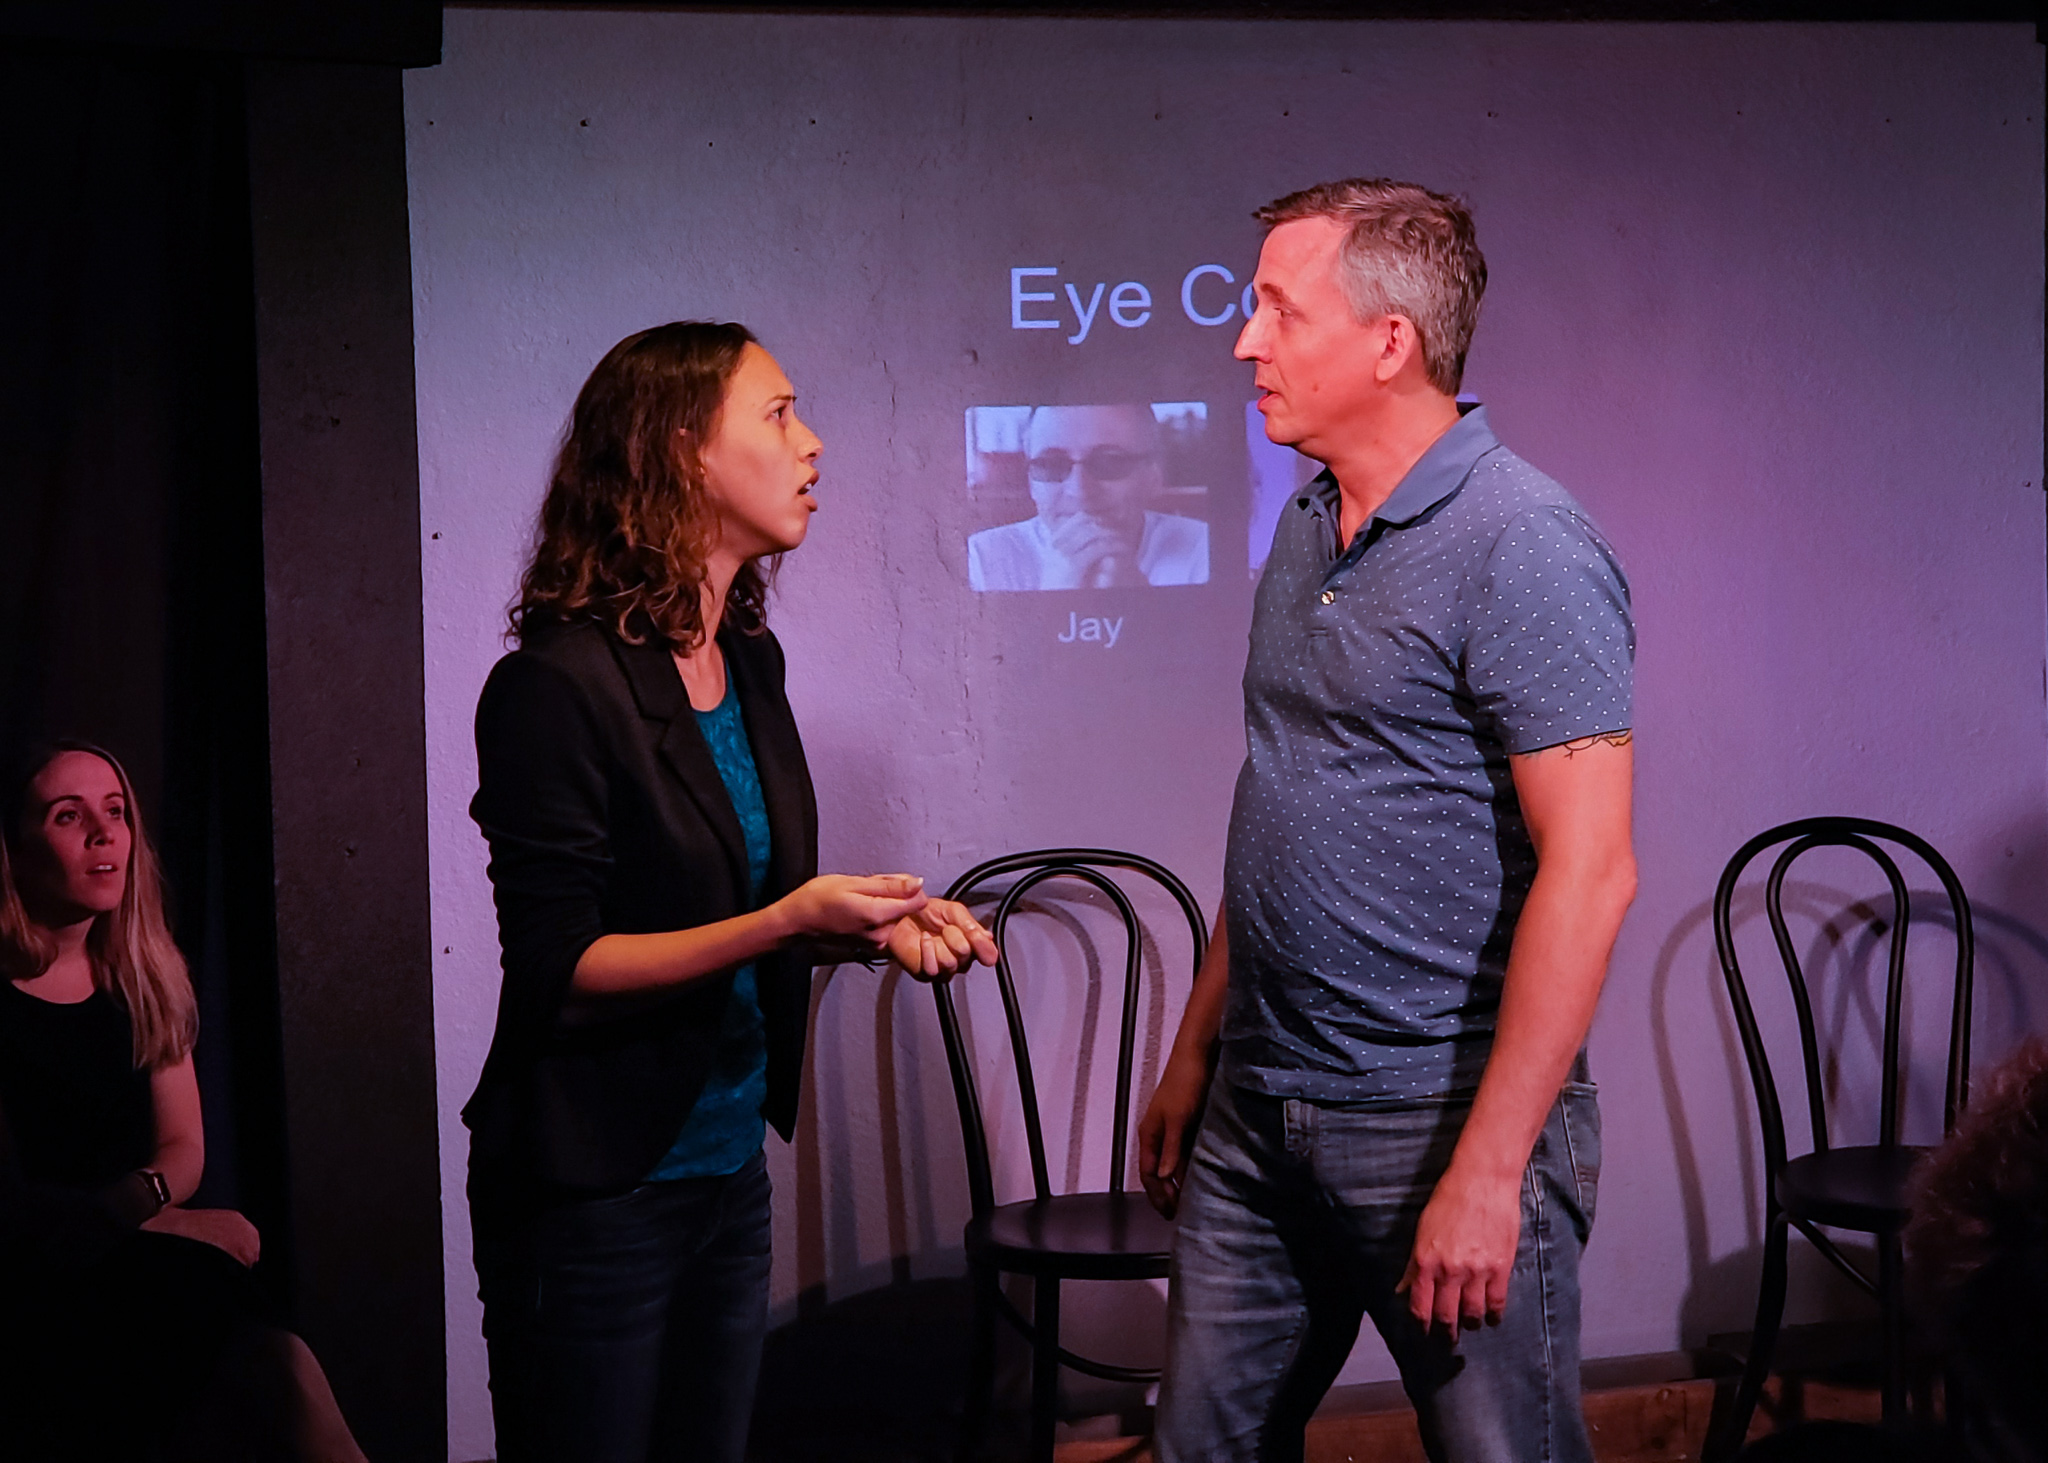 Gabbi and Jay playing Eye Contact in Whose Line St Pete.